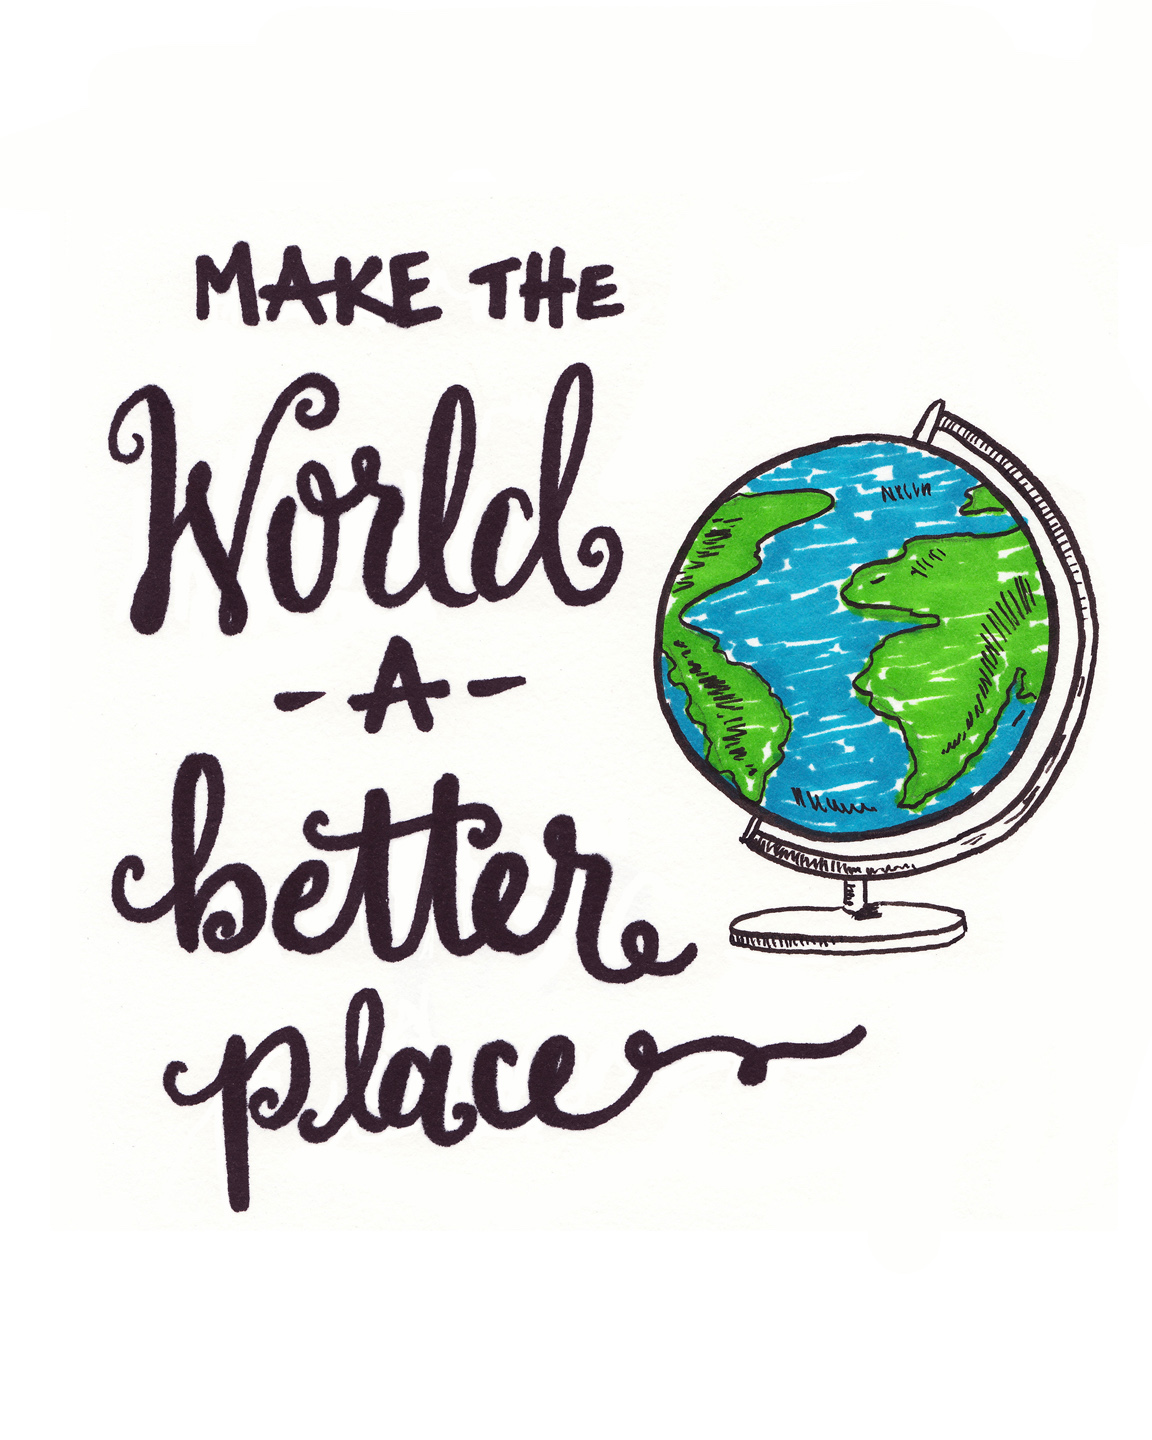 how to make the world better